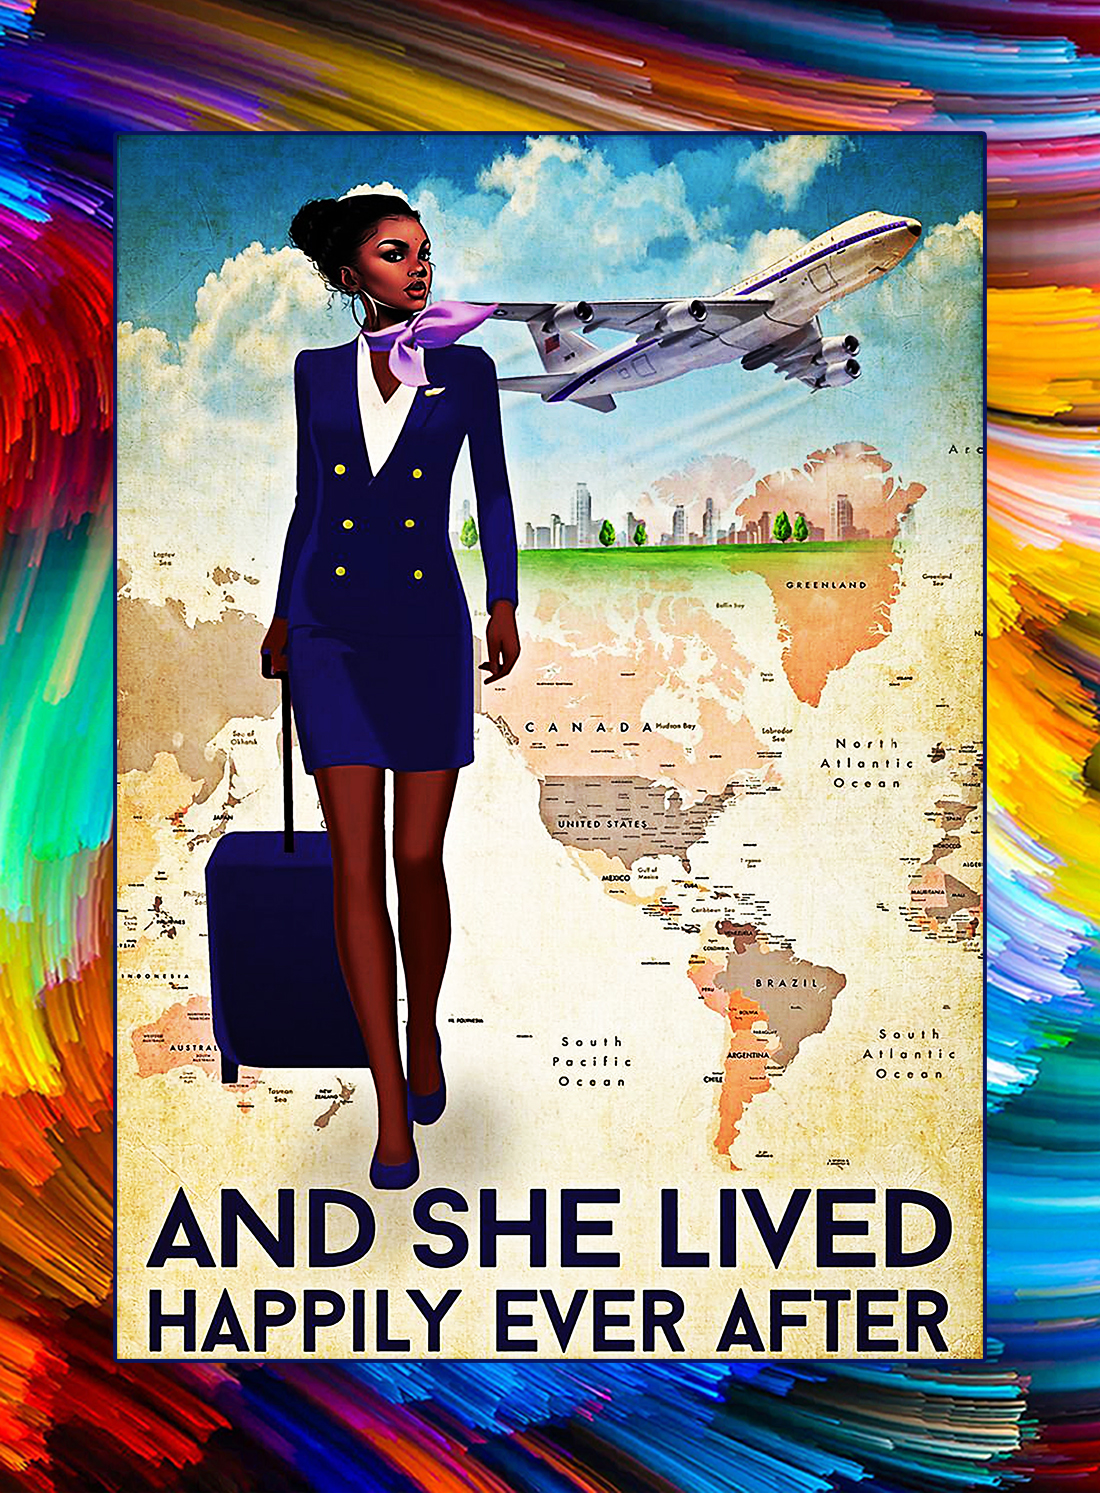 Flight attendant and she lived happily ever after poster - Black girl style